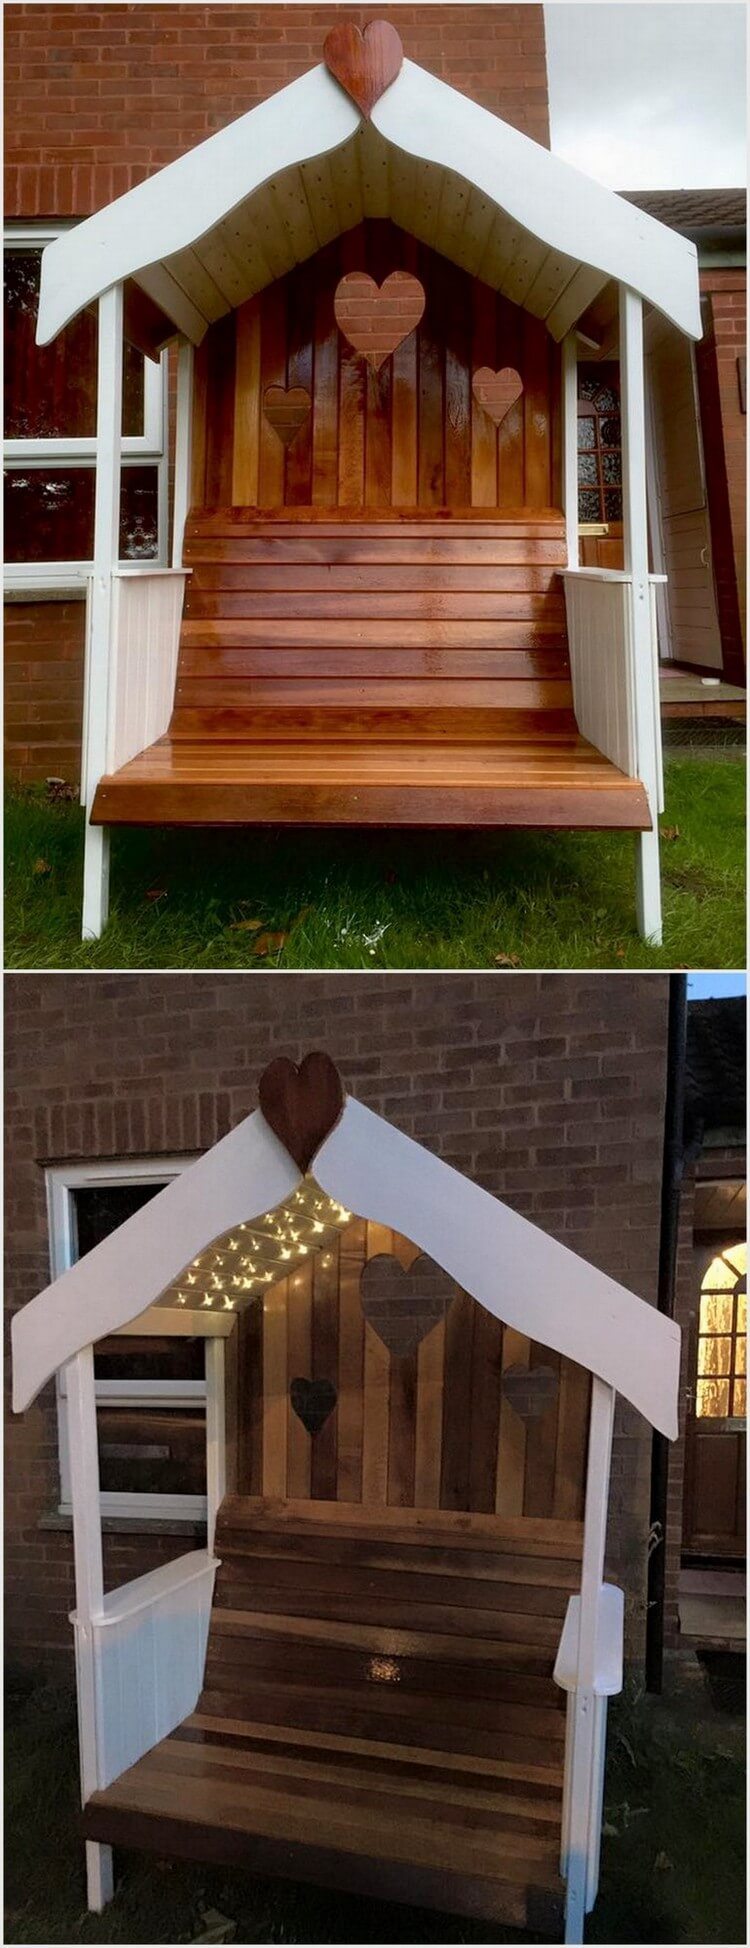 Wood Pallet Gazebo Bench with Lighs